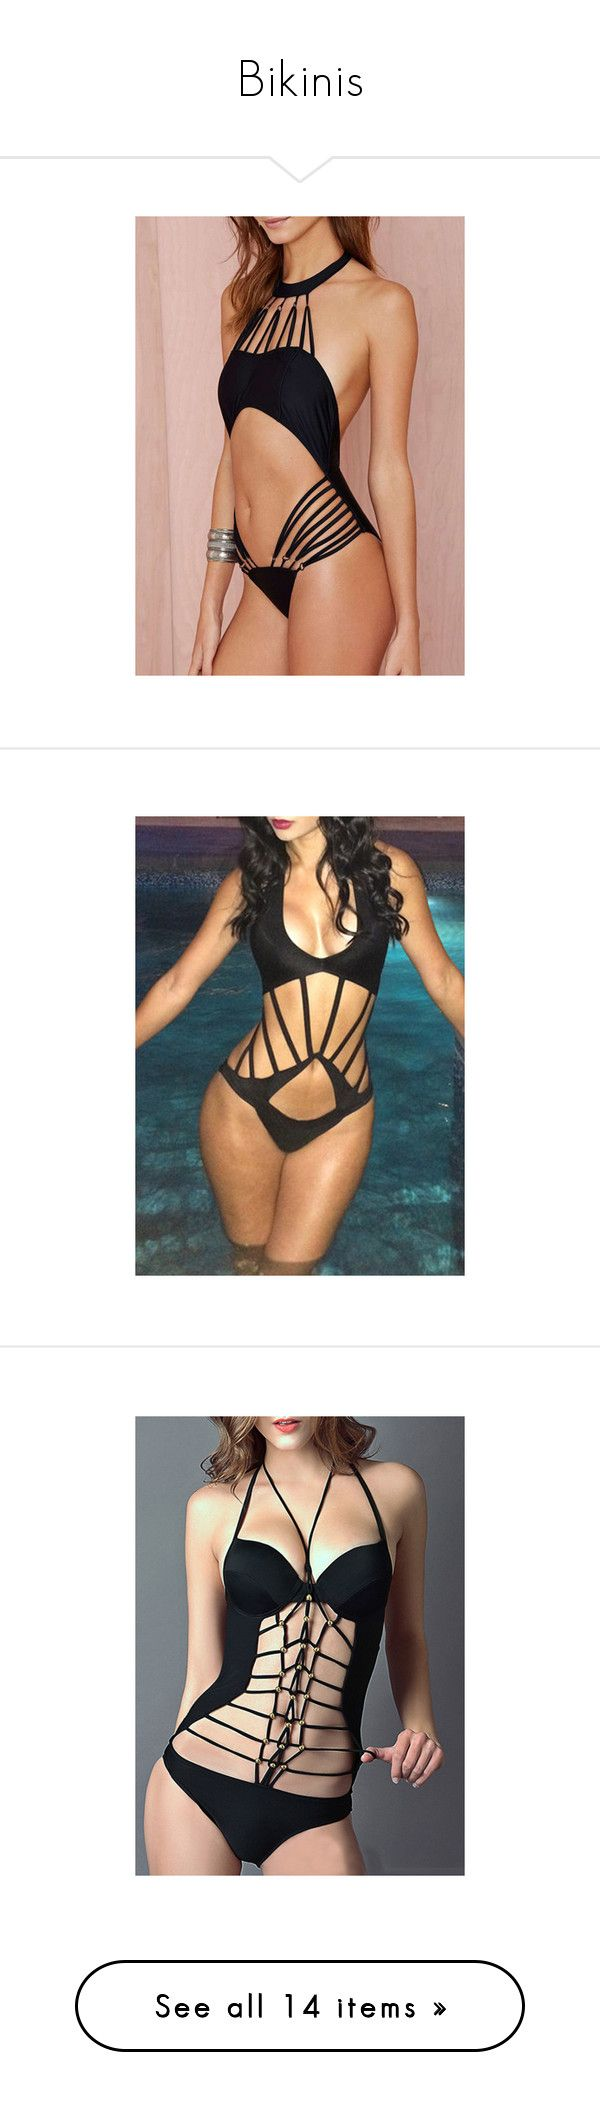 """Bikinis"" by diane-ds ❤ liked on Polyvore featuring swimwear, one-piece swimsuits, black, black halter one piece swimsuit, halter one piece swimsuit, halter top, monokini swimwear, monokini bathing suit, bathing suit and bikini"